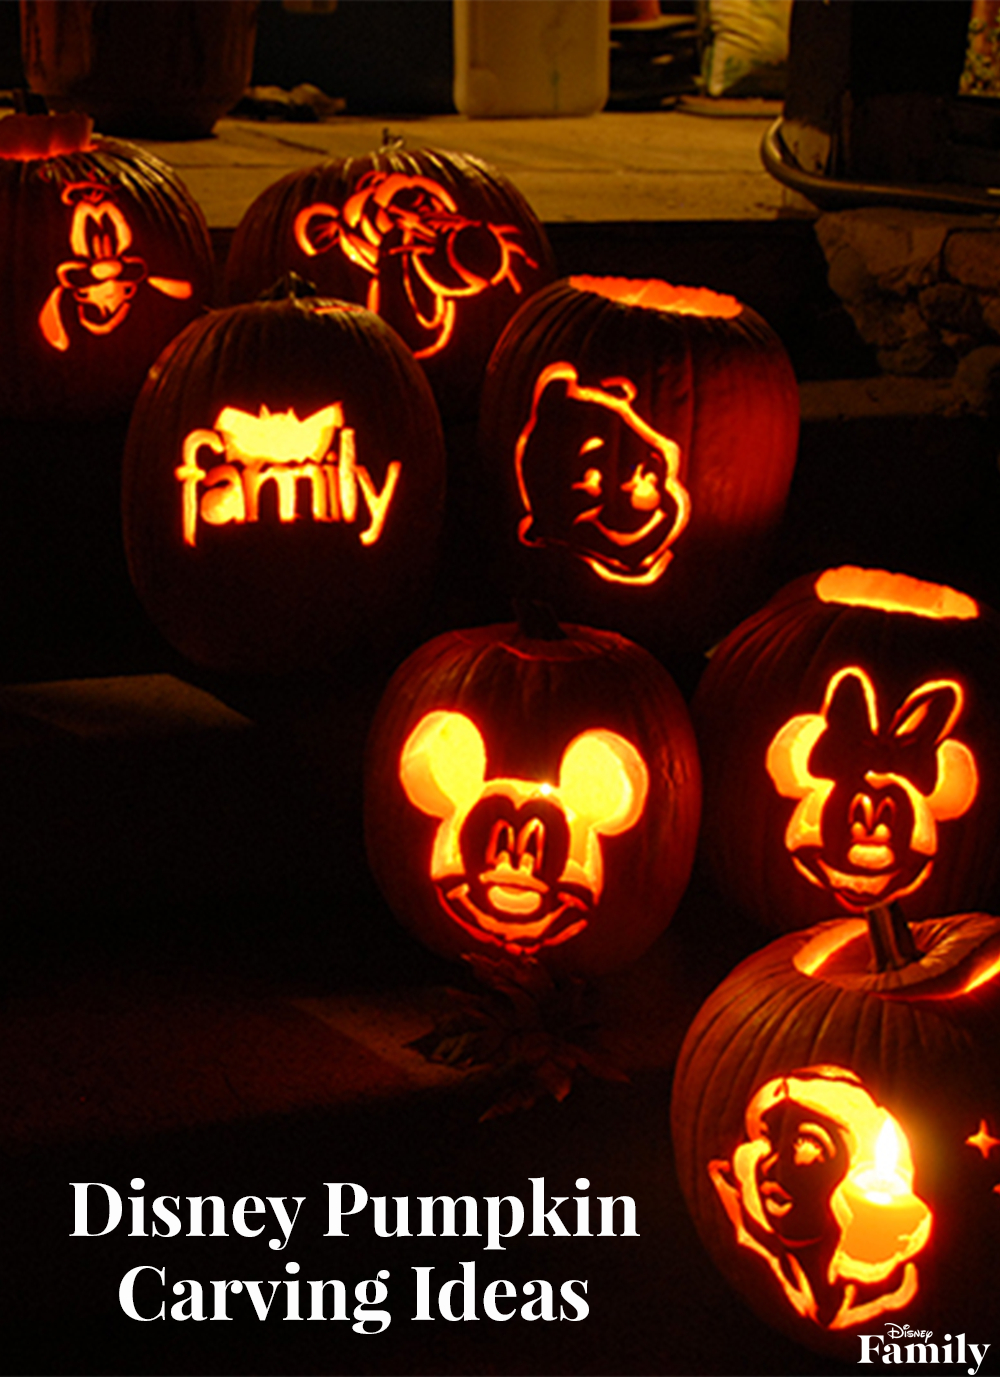 Disney Pumpkin Carving Ideas | Disney Family - Free Pumpkin Carving Patterns Disney Printable